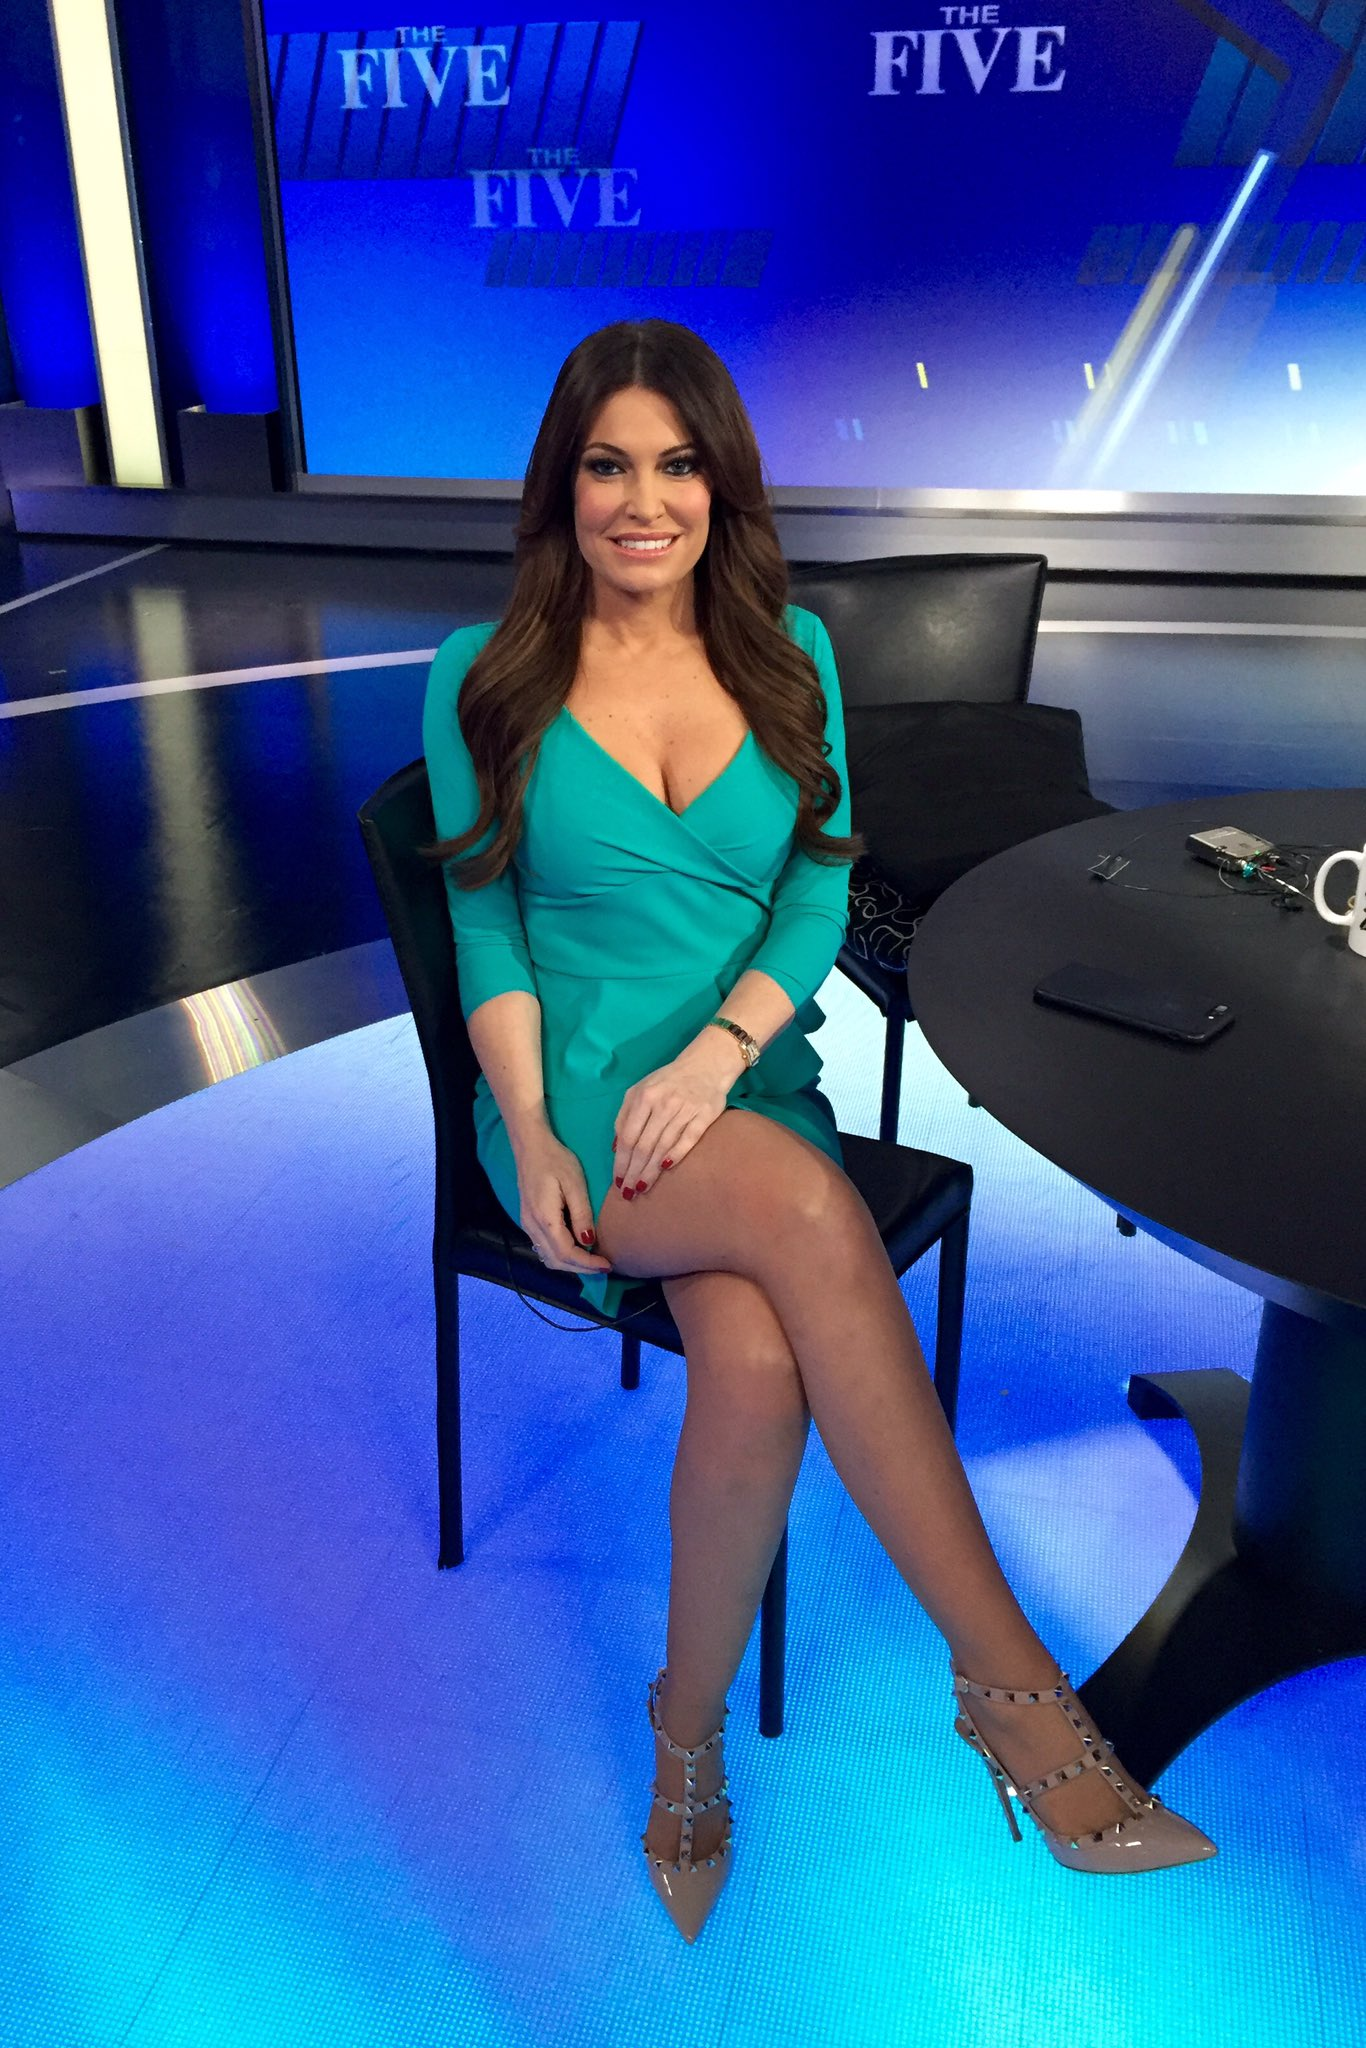 """Kimberly Guilfoyle on Twitter: """"Loving our new studio ..."""